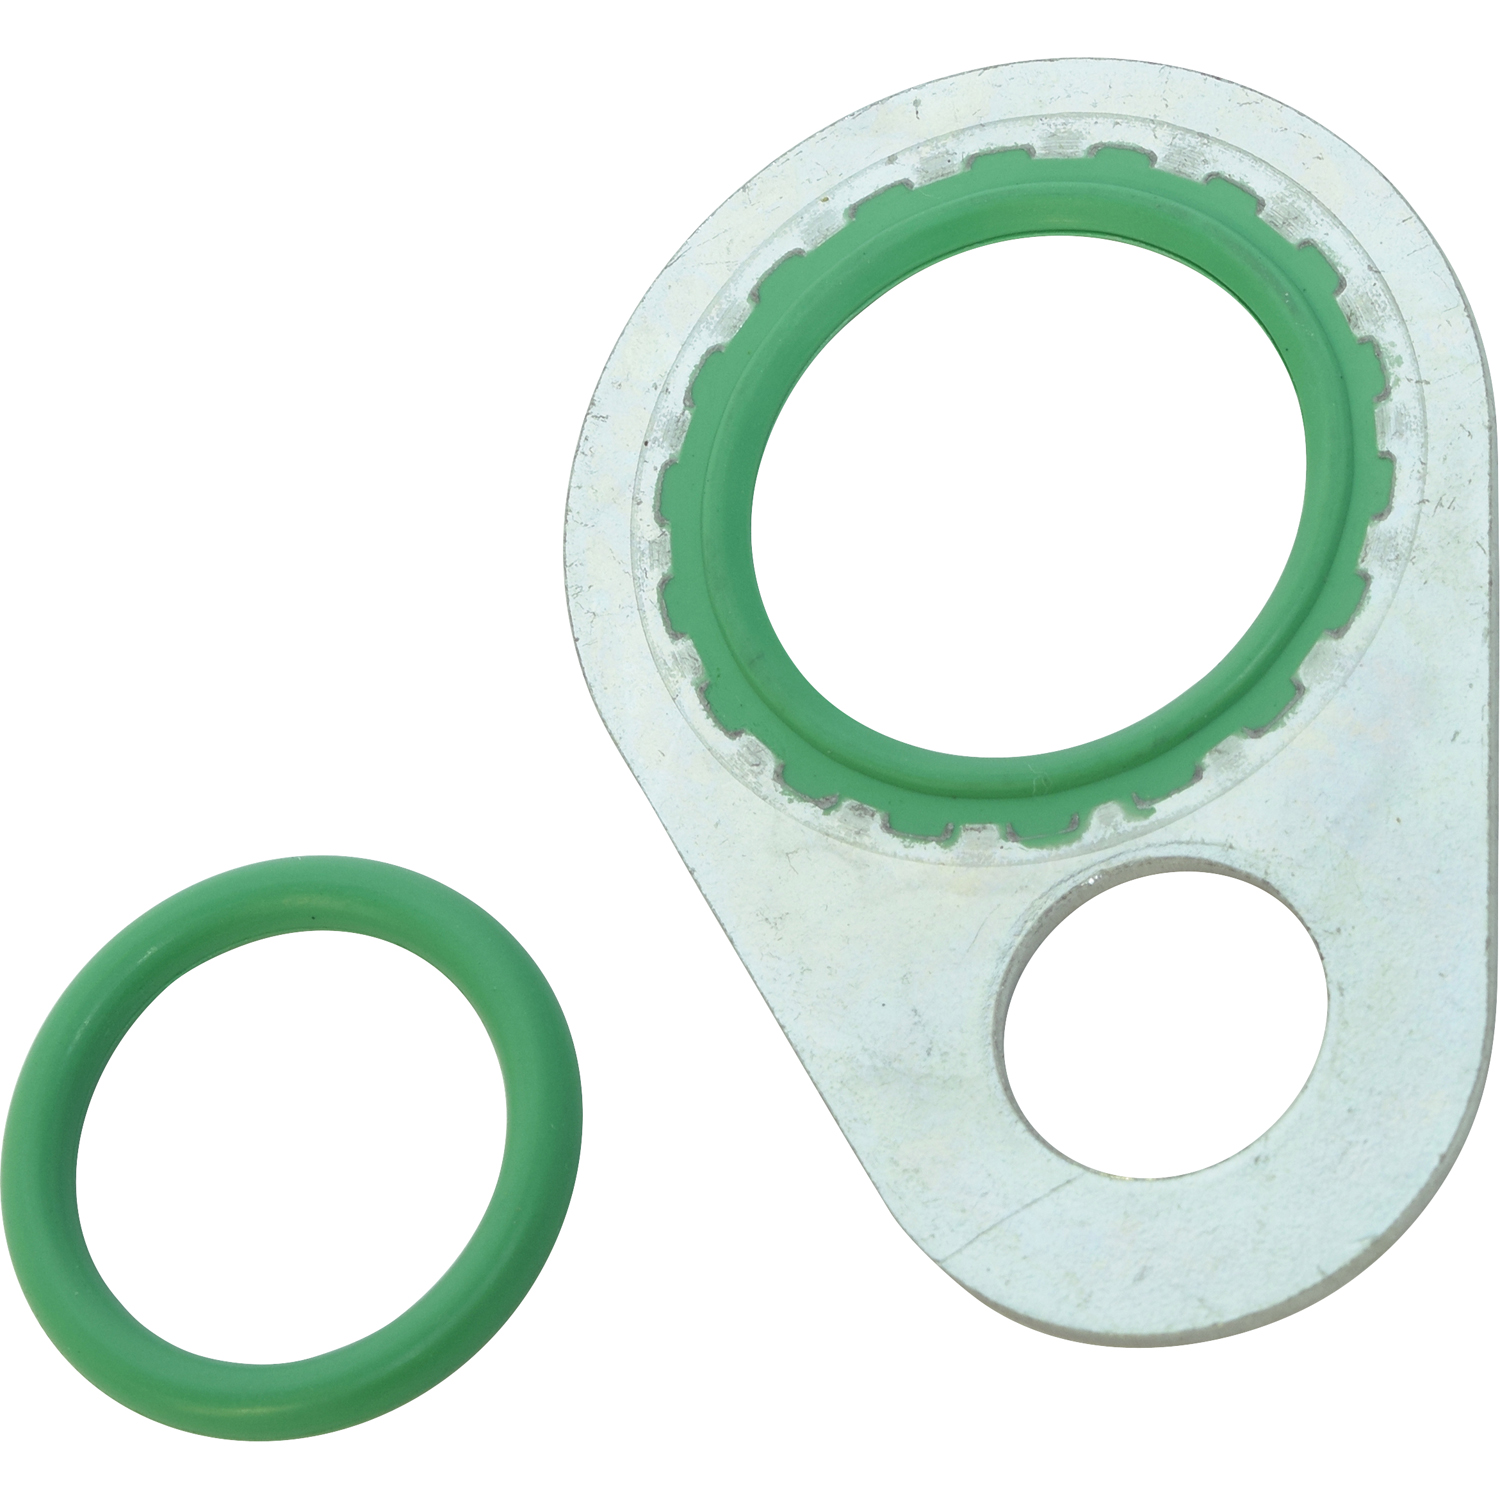 Oring Seal and Gasket Kit Teardrop & O-Ring Suction Kit